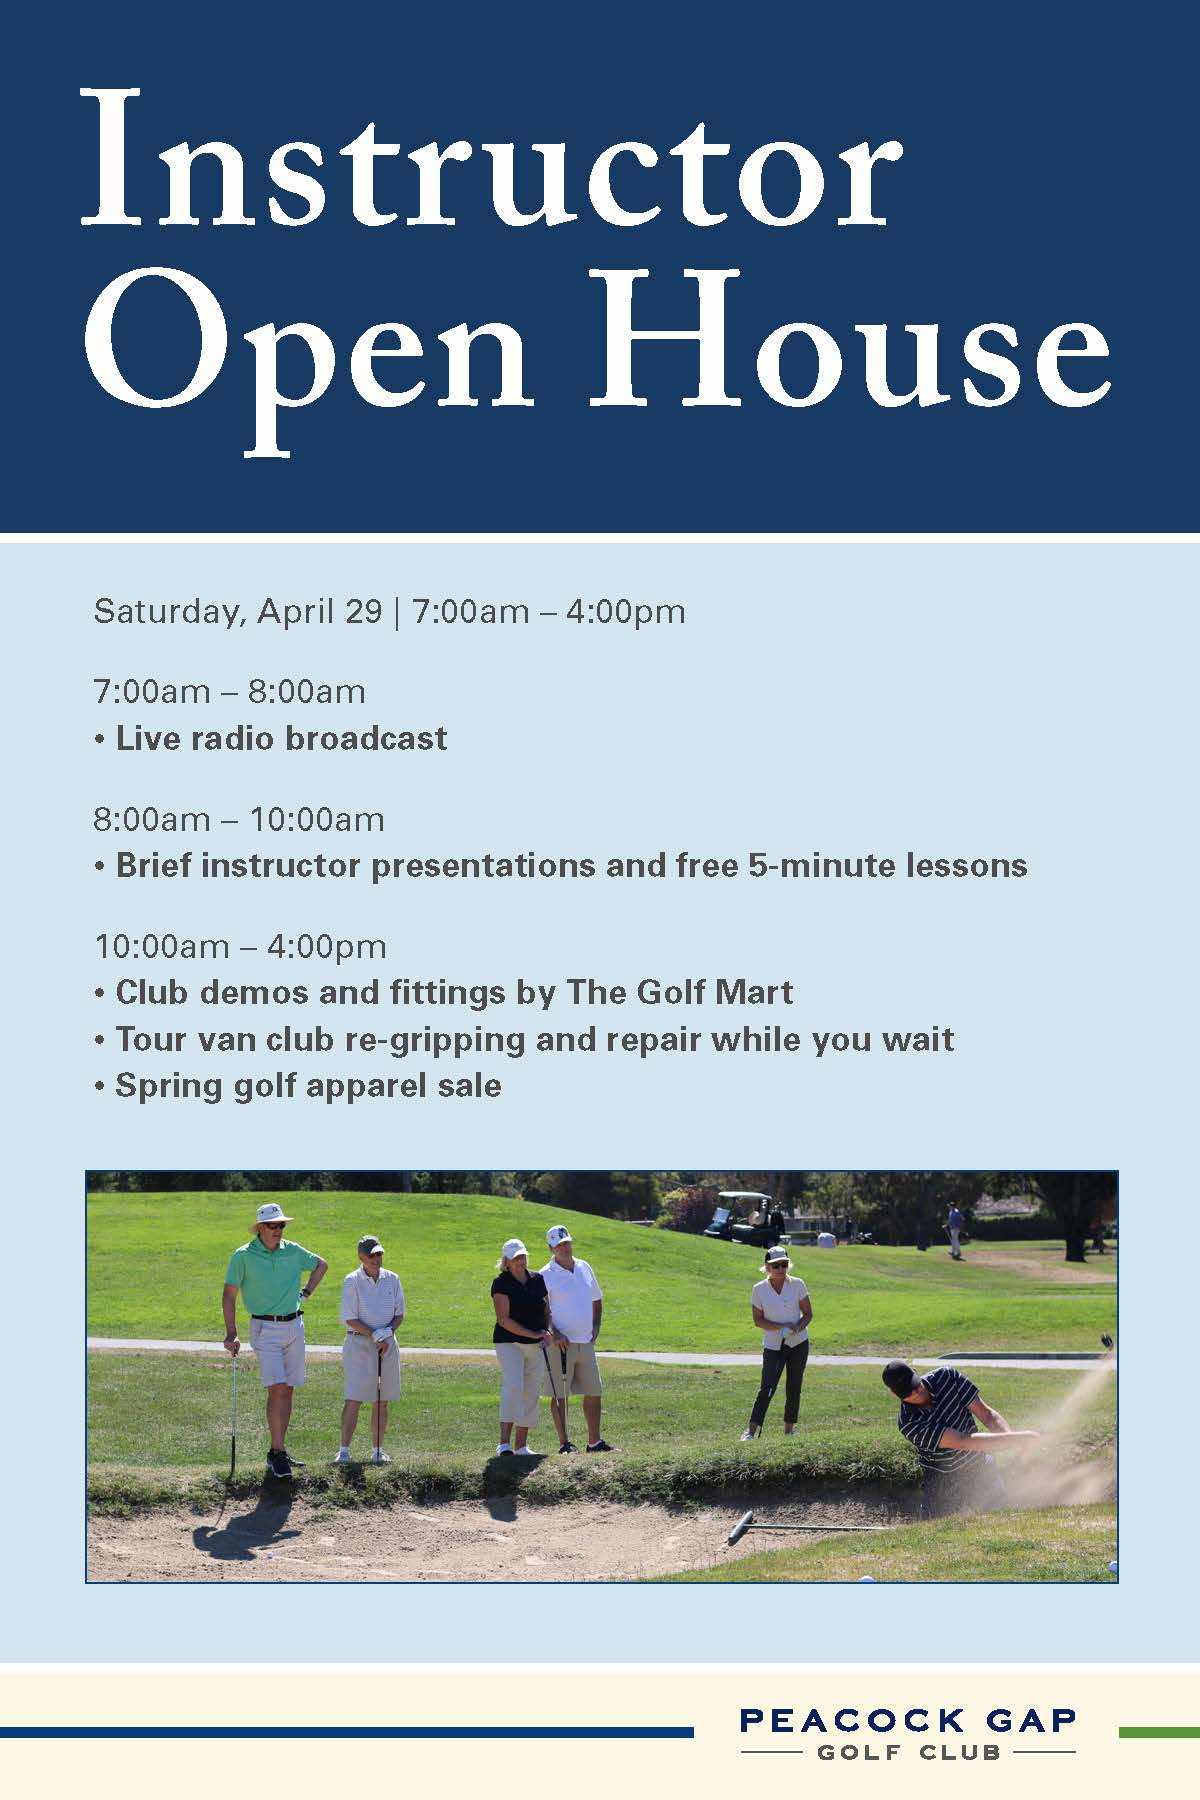 Instructor Open House